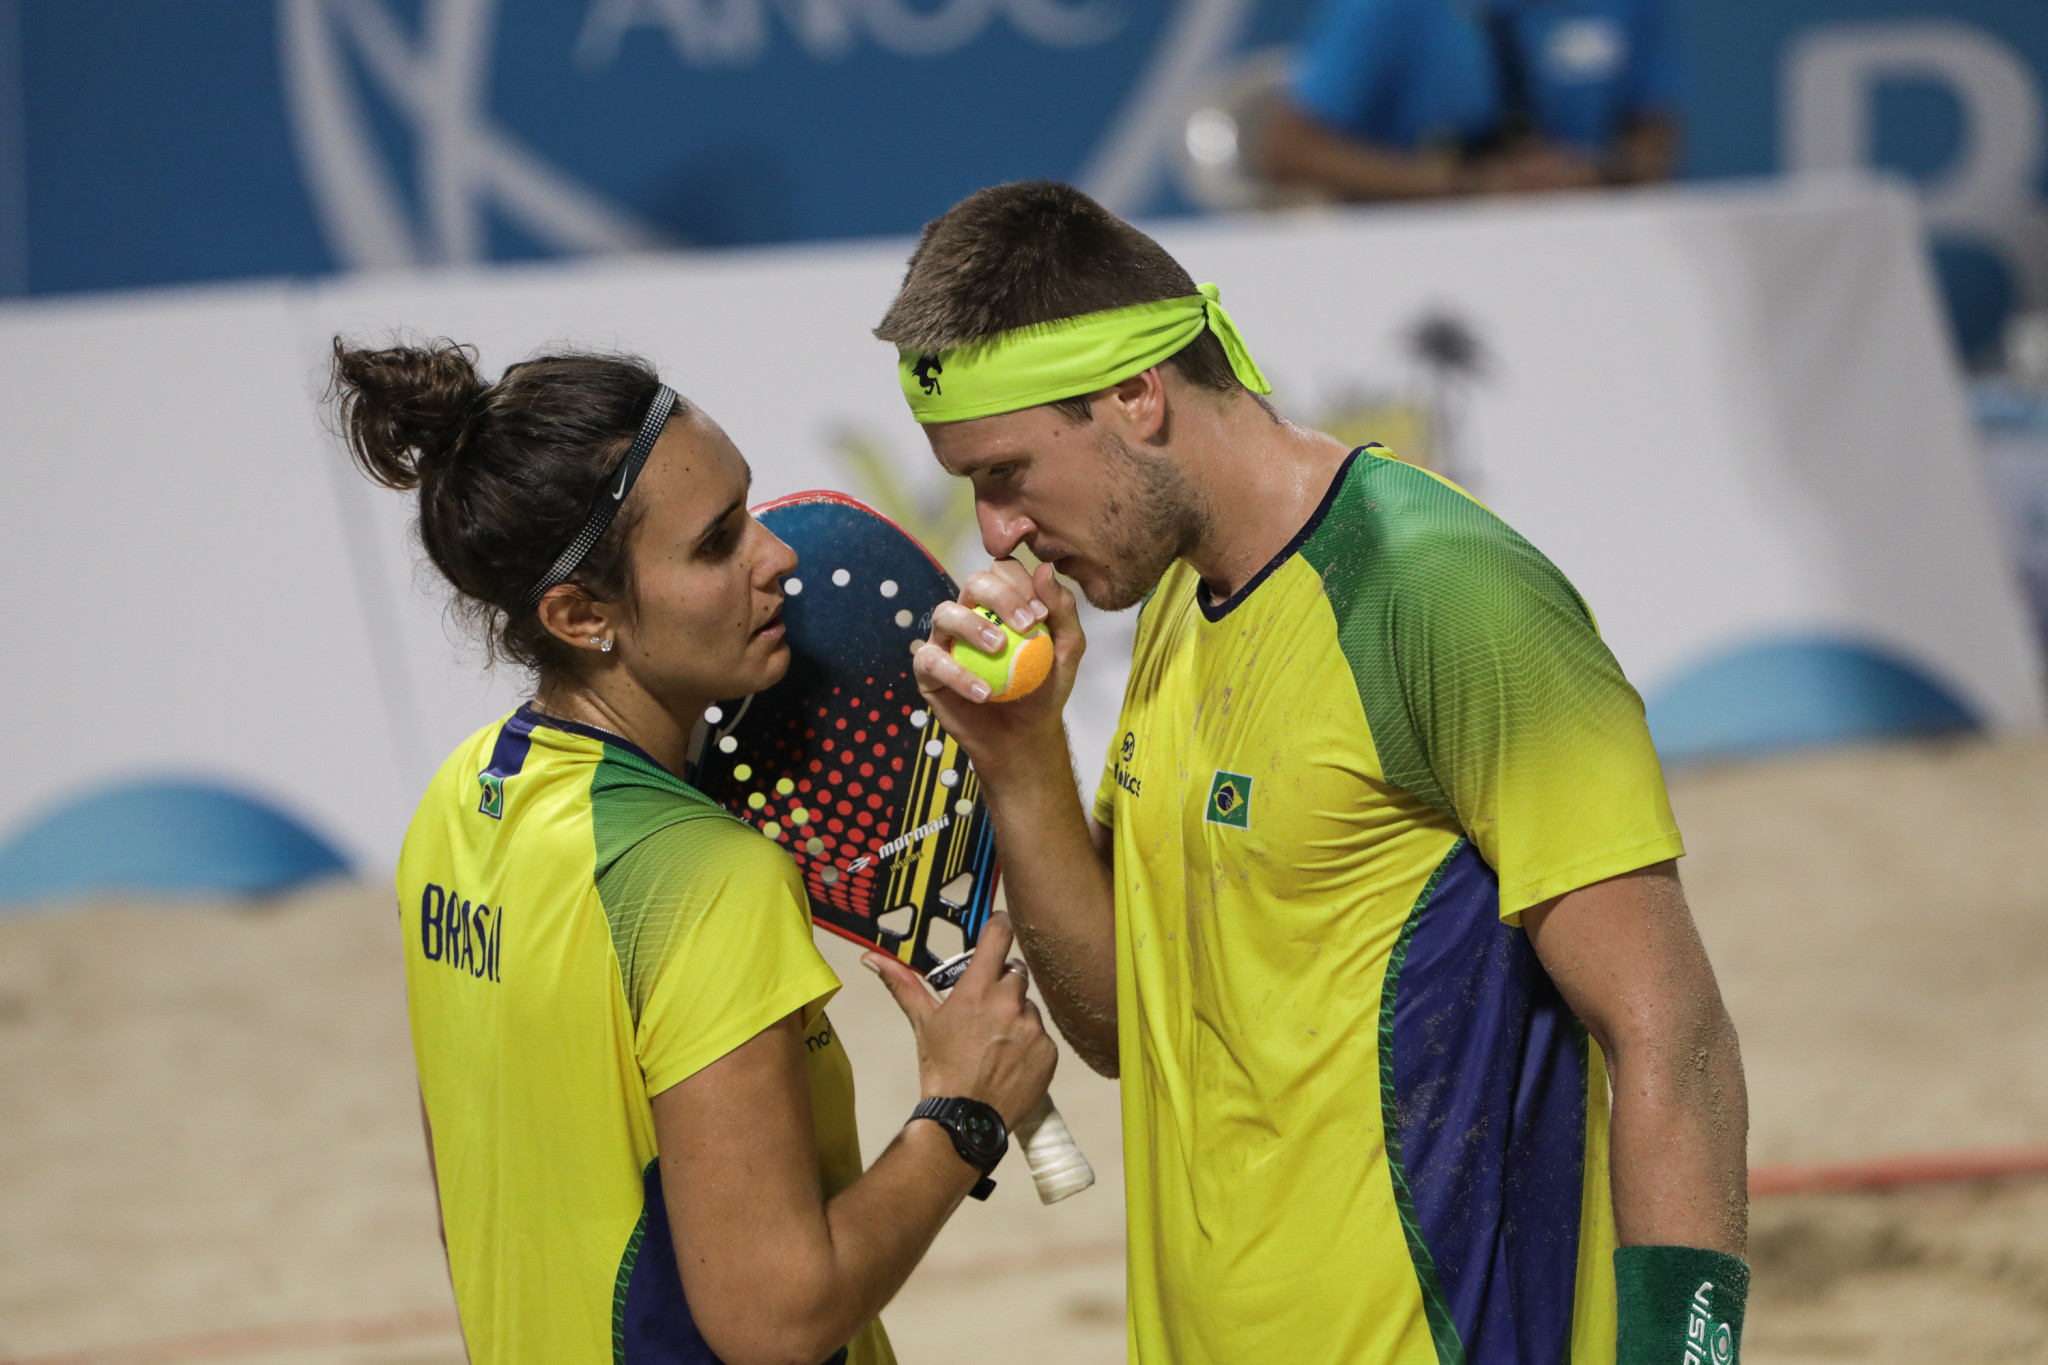 Andre Baran and Rafaella Miller won the mixed doubles beach tennis for Brazil ©ANOC